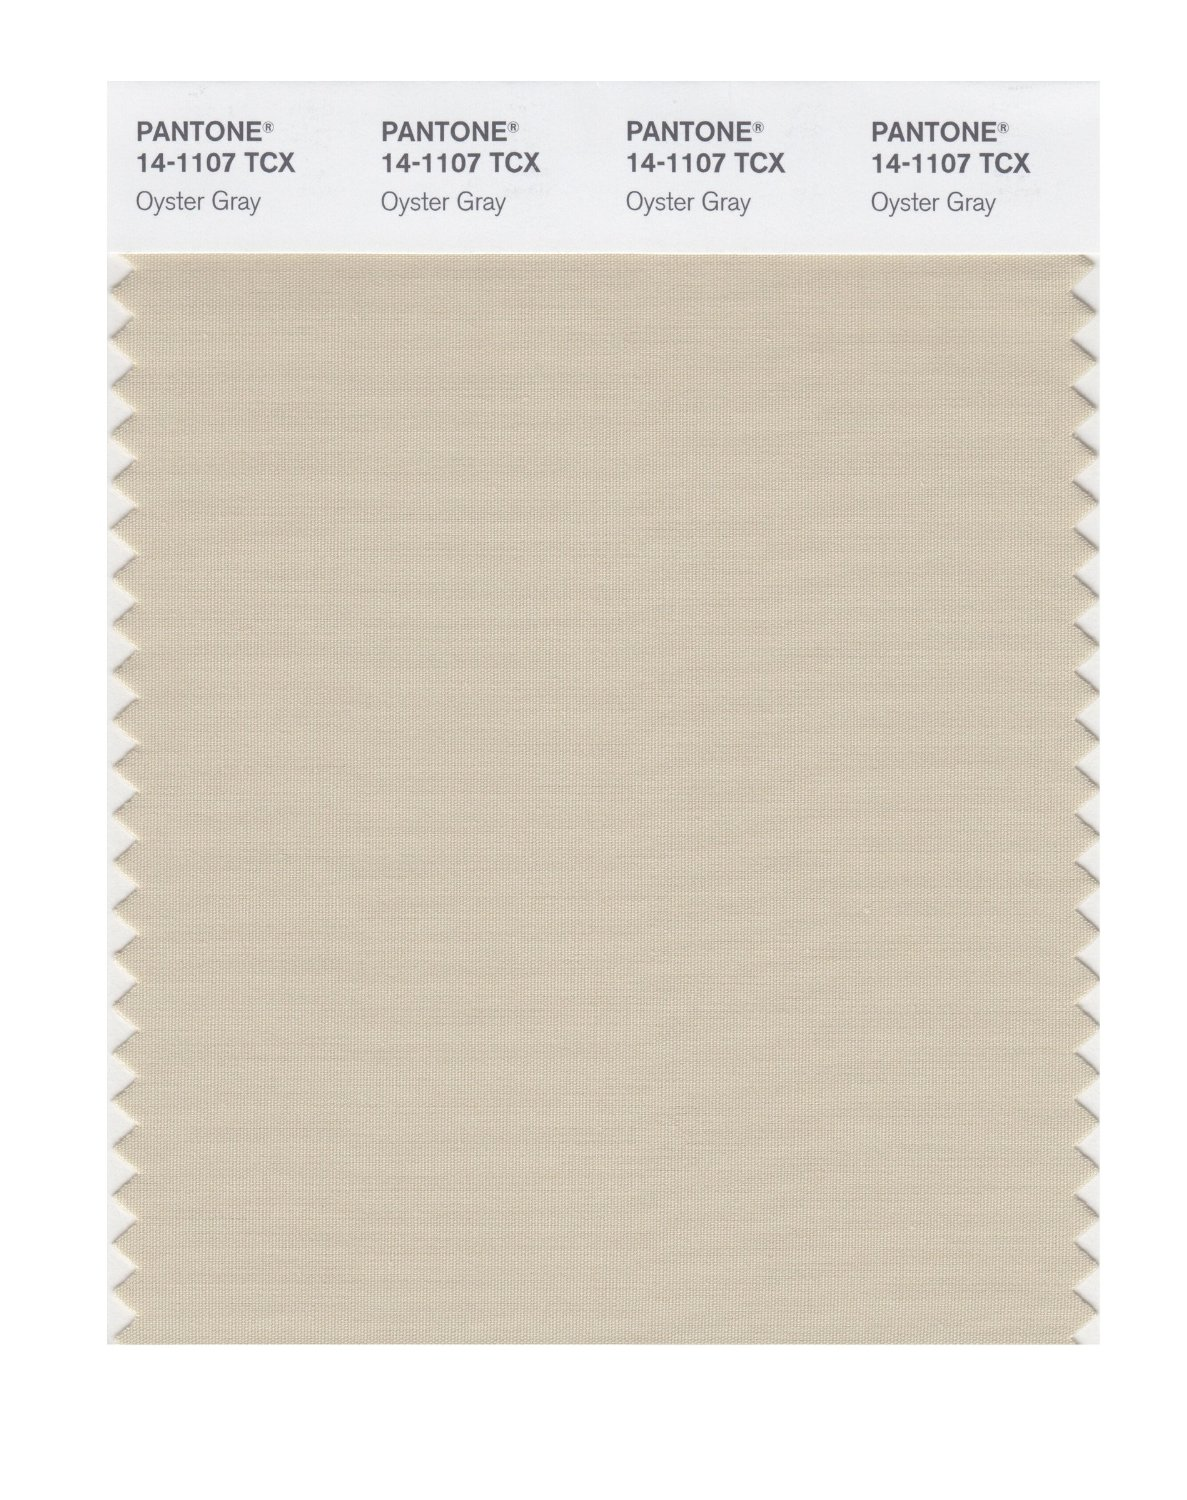 Pantone Smart Swatch 14-1107 Oyster Gray